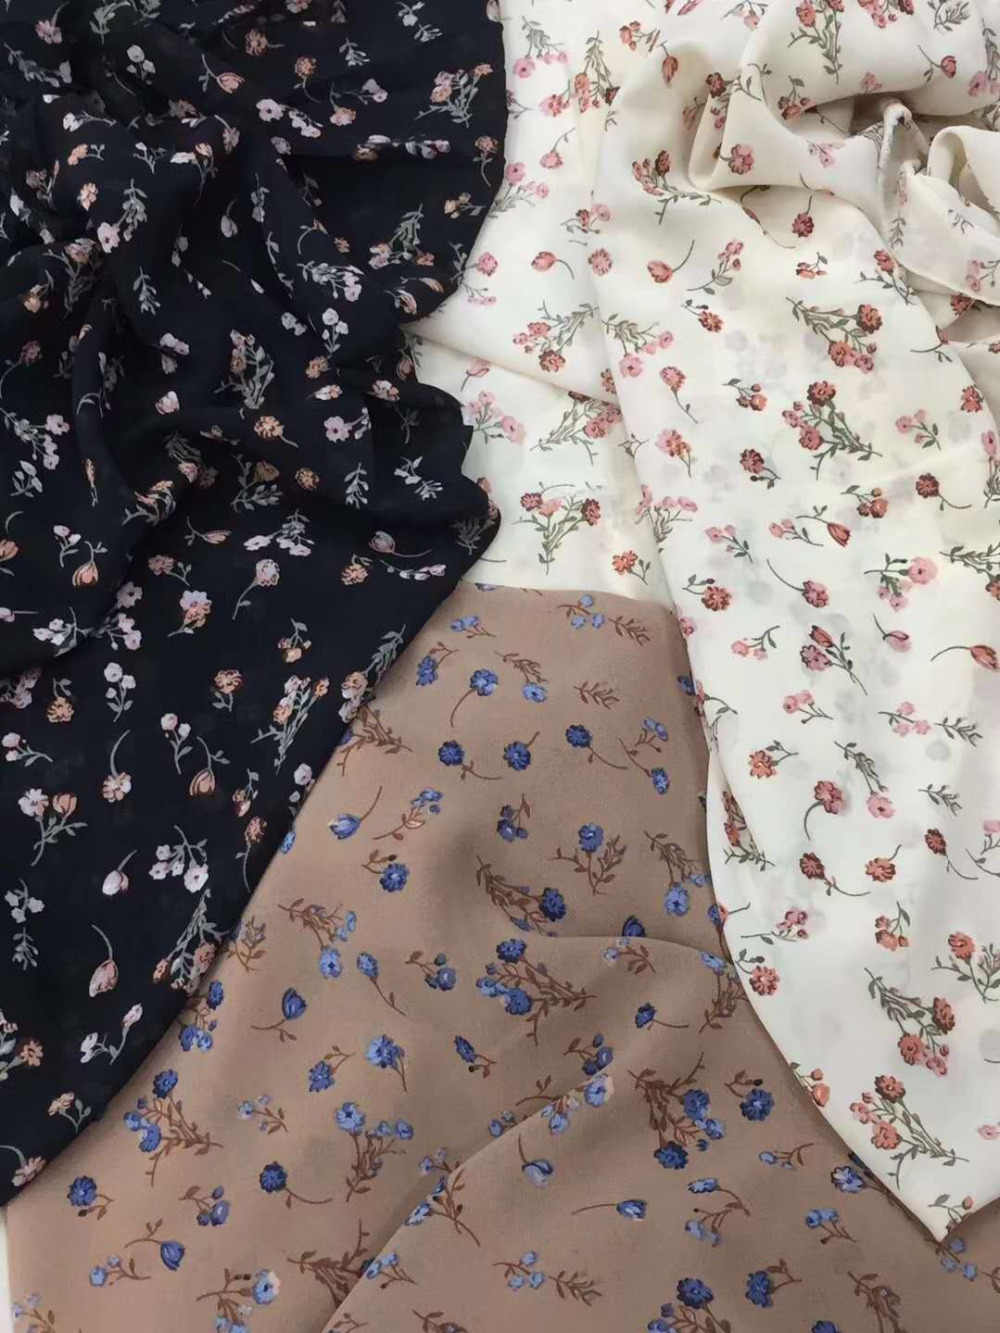 150cm width chiffon fabric small flowers  pattern can see through for skirt suit-dress headband CH-1122 10m